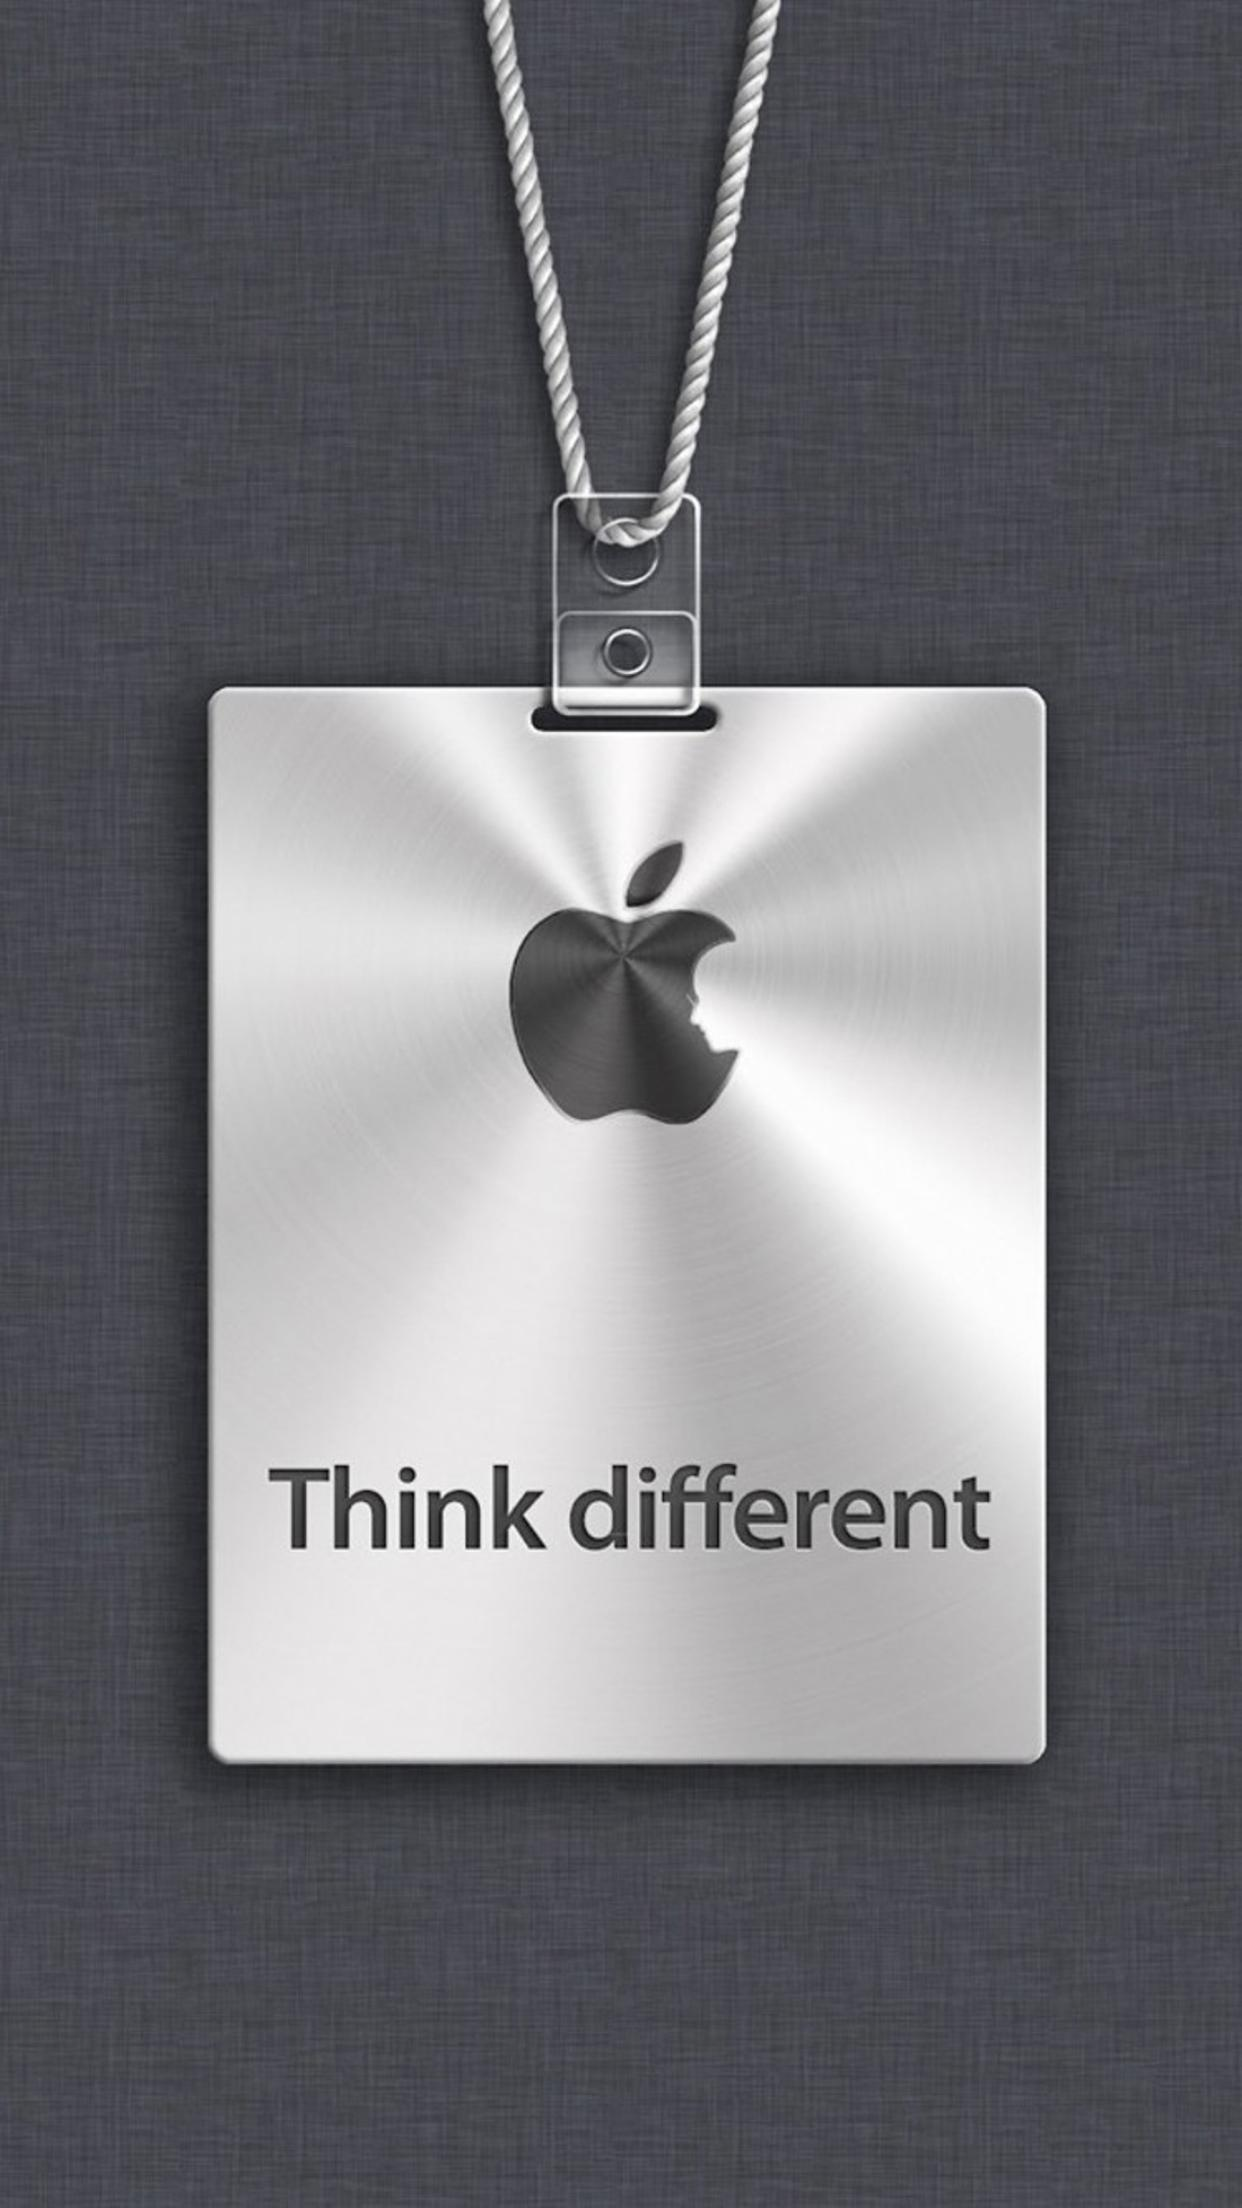 apple logo - think different - hd wallpaper wallpaper download 1242x2208